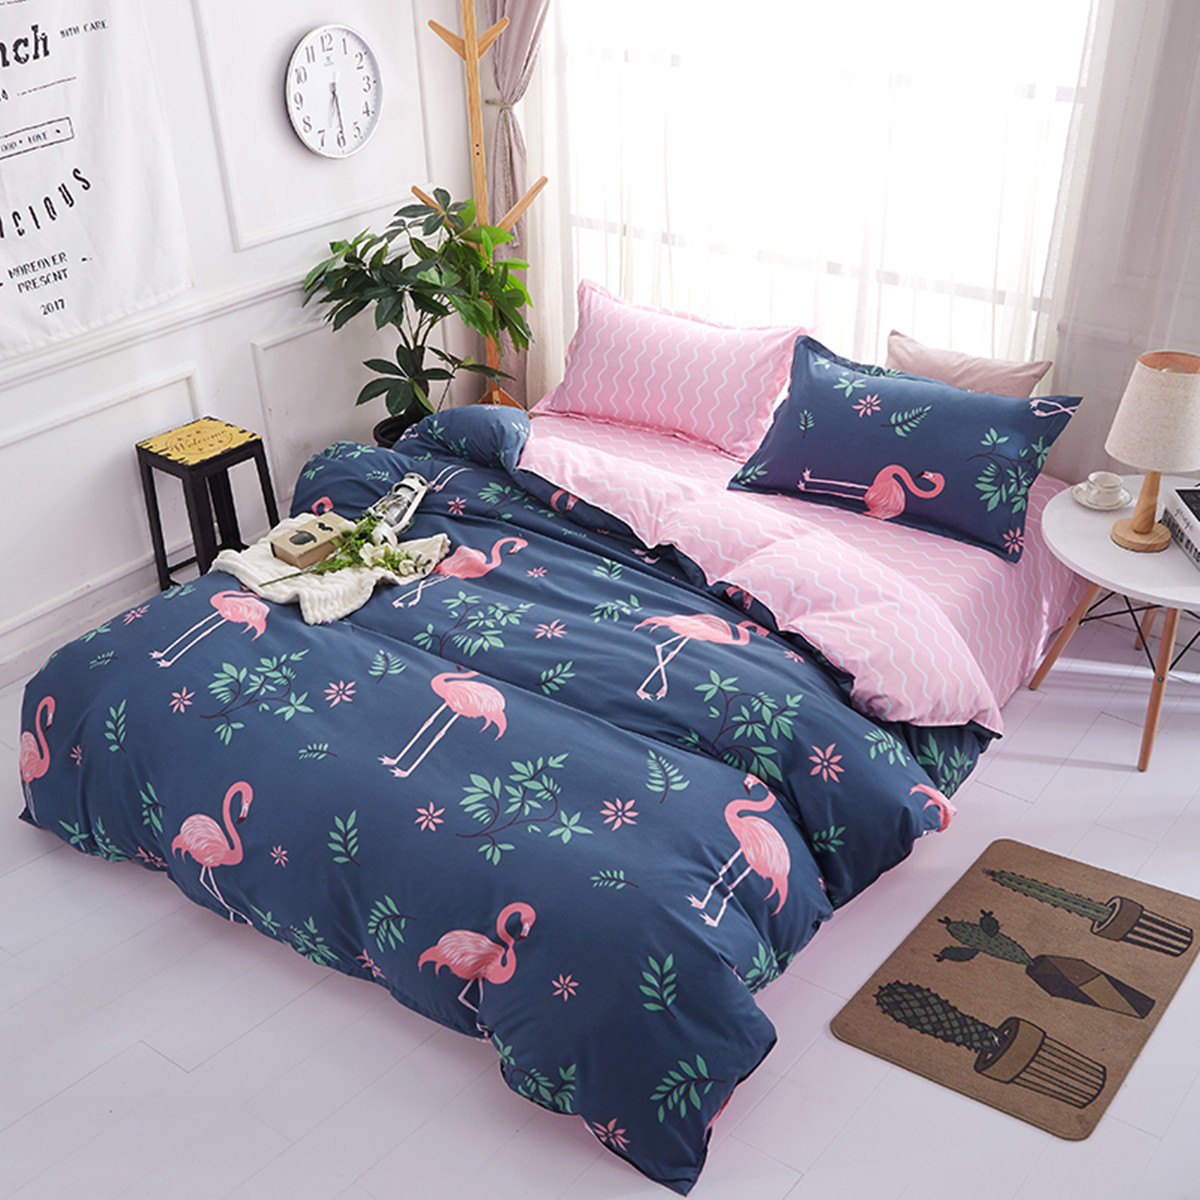 4PCS Bedclothes Polyester Print Bedding Sets Quilt Duvet Cover Pillowcase Decor